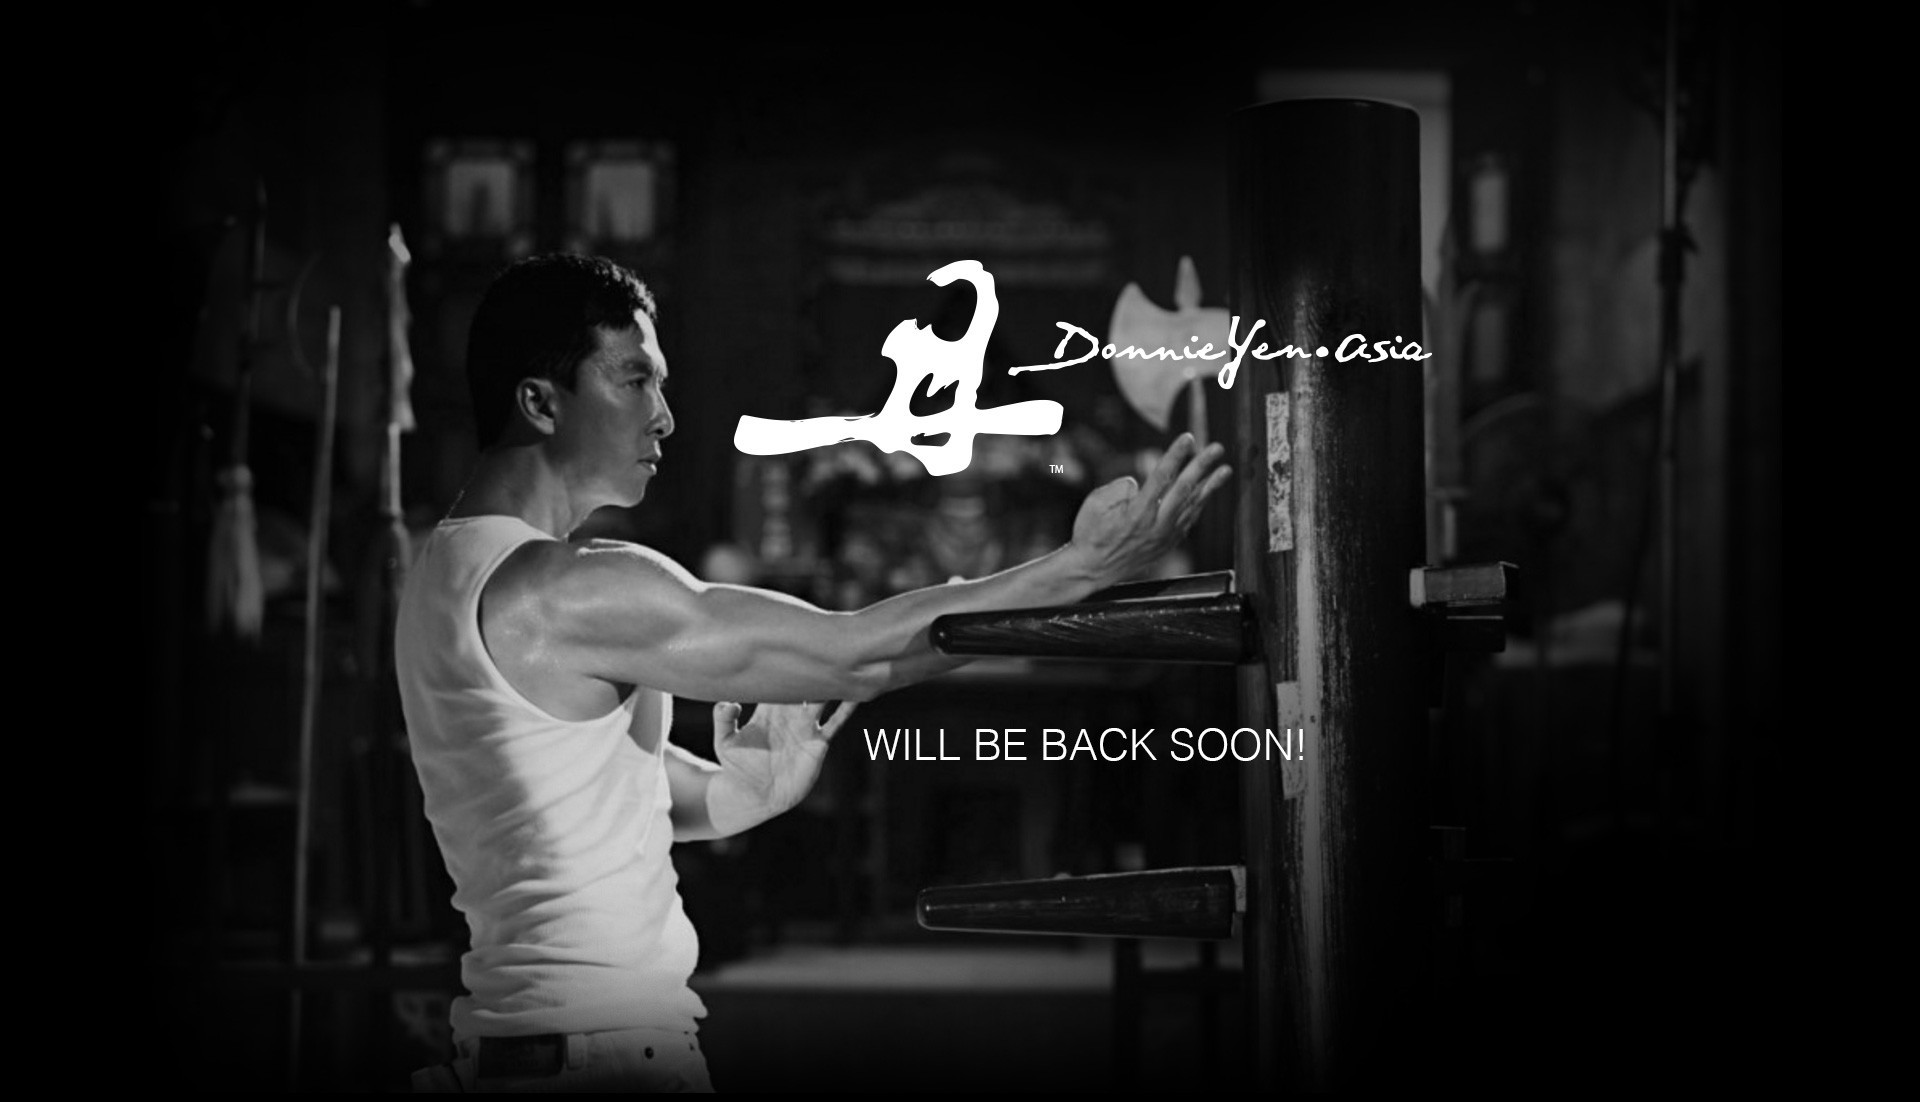 DonnieYen.asia Back Soon!